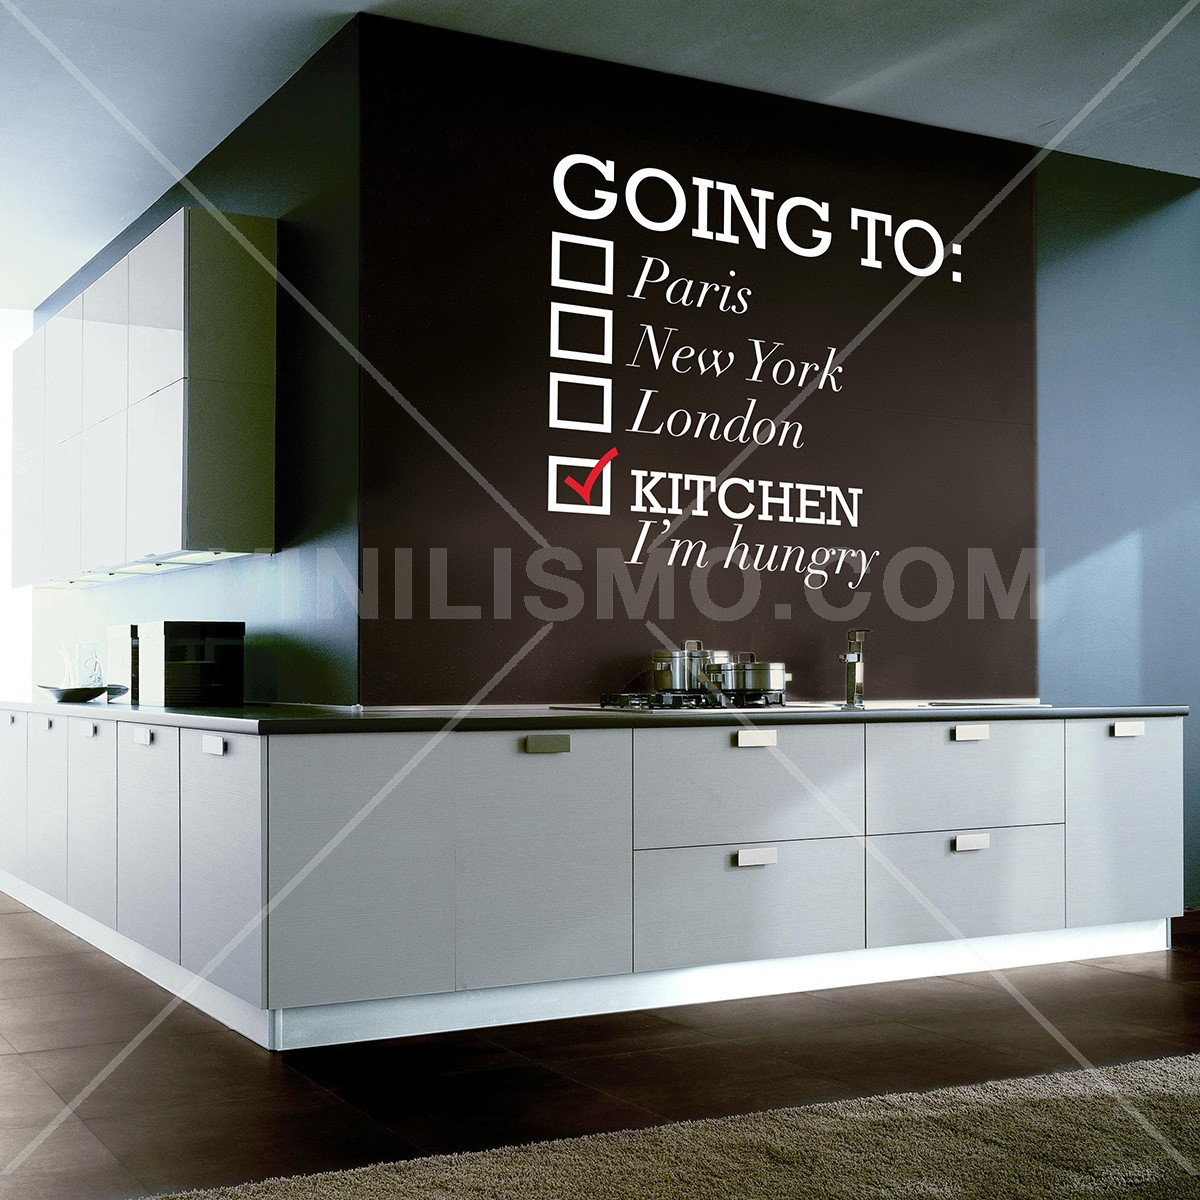 Vinilo Decorativo: Going To